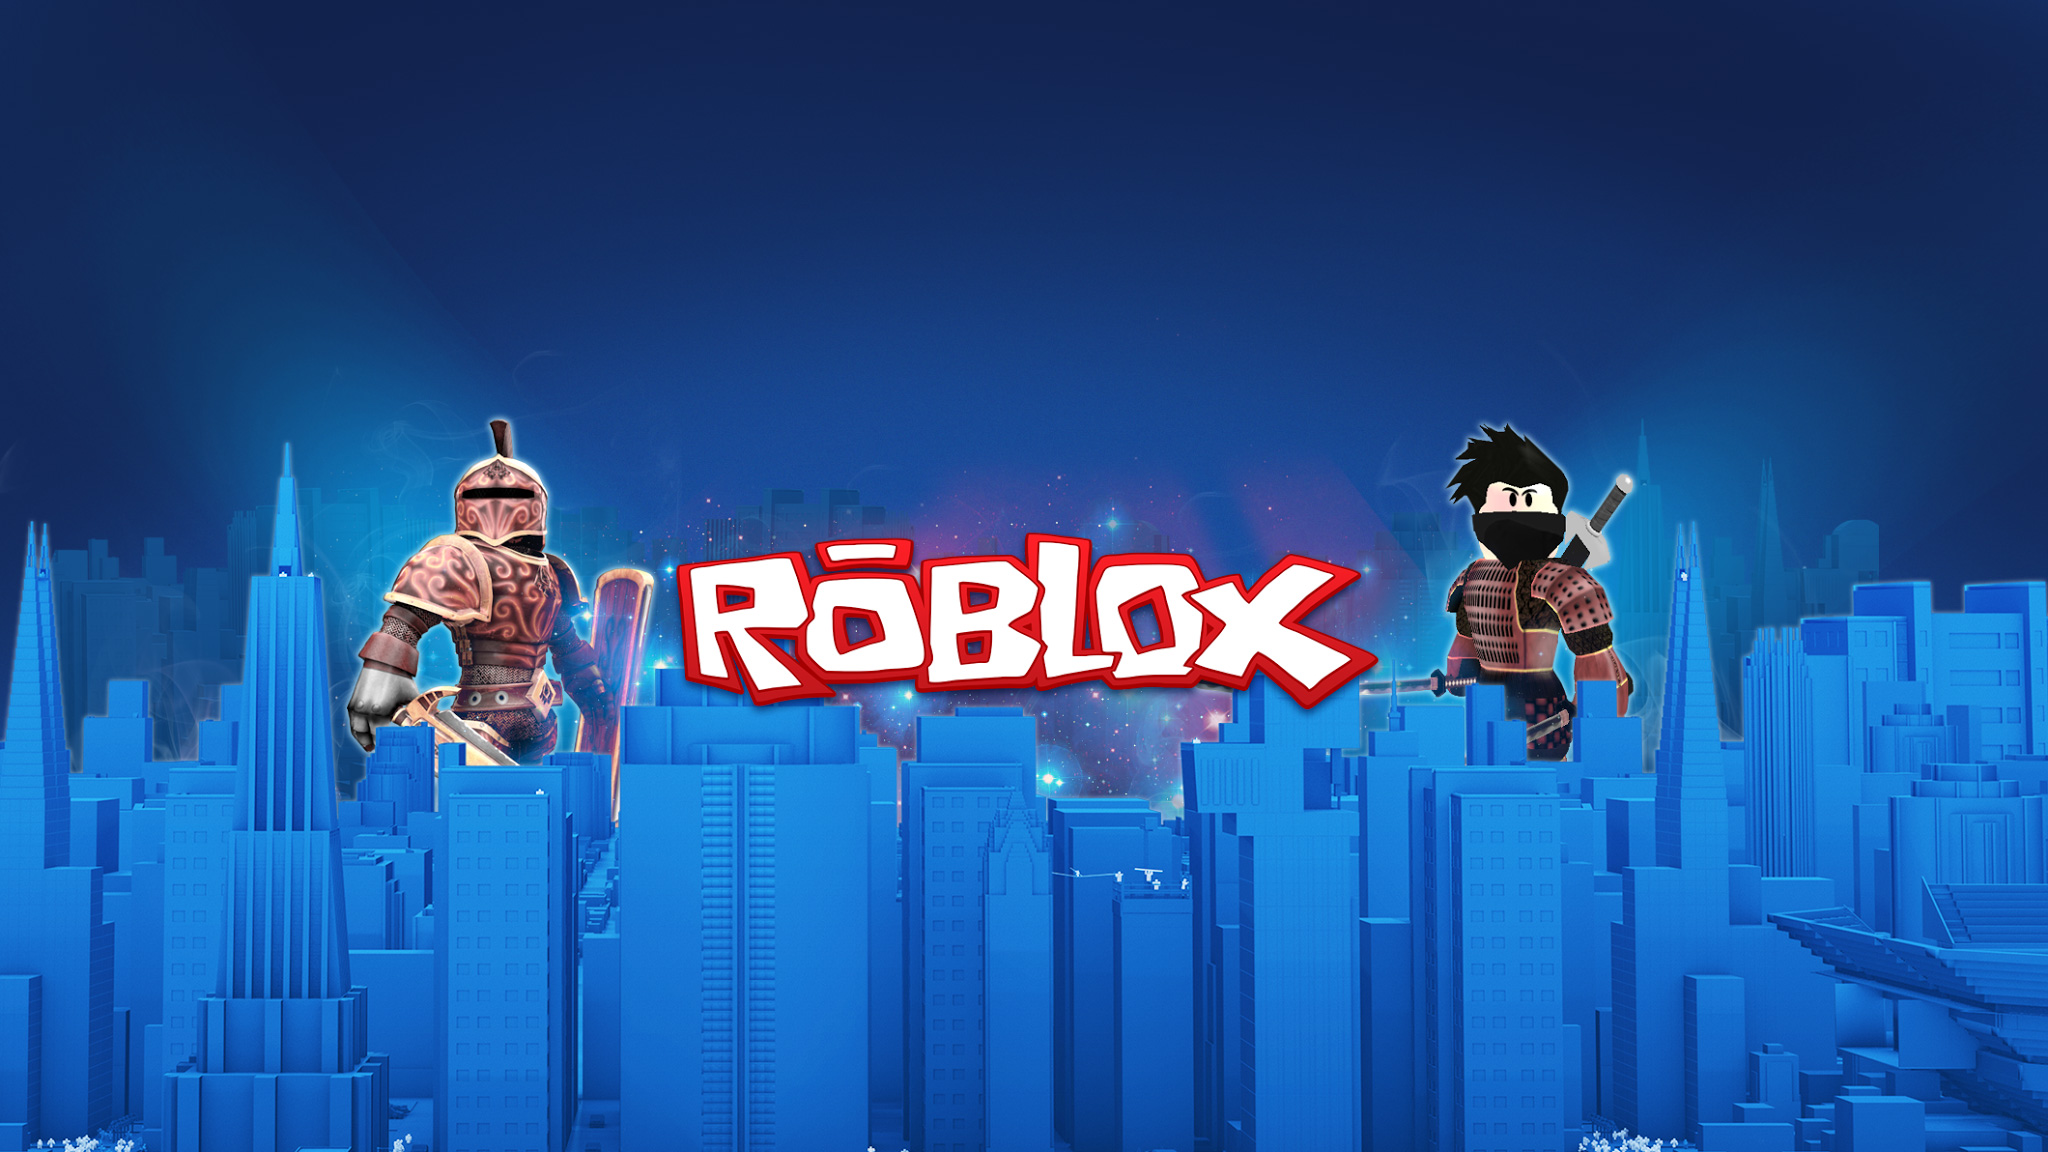 Roblox Wallpaper For My Desktop